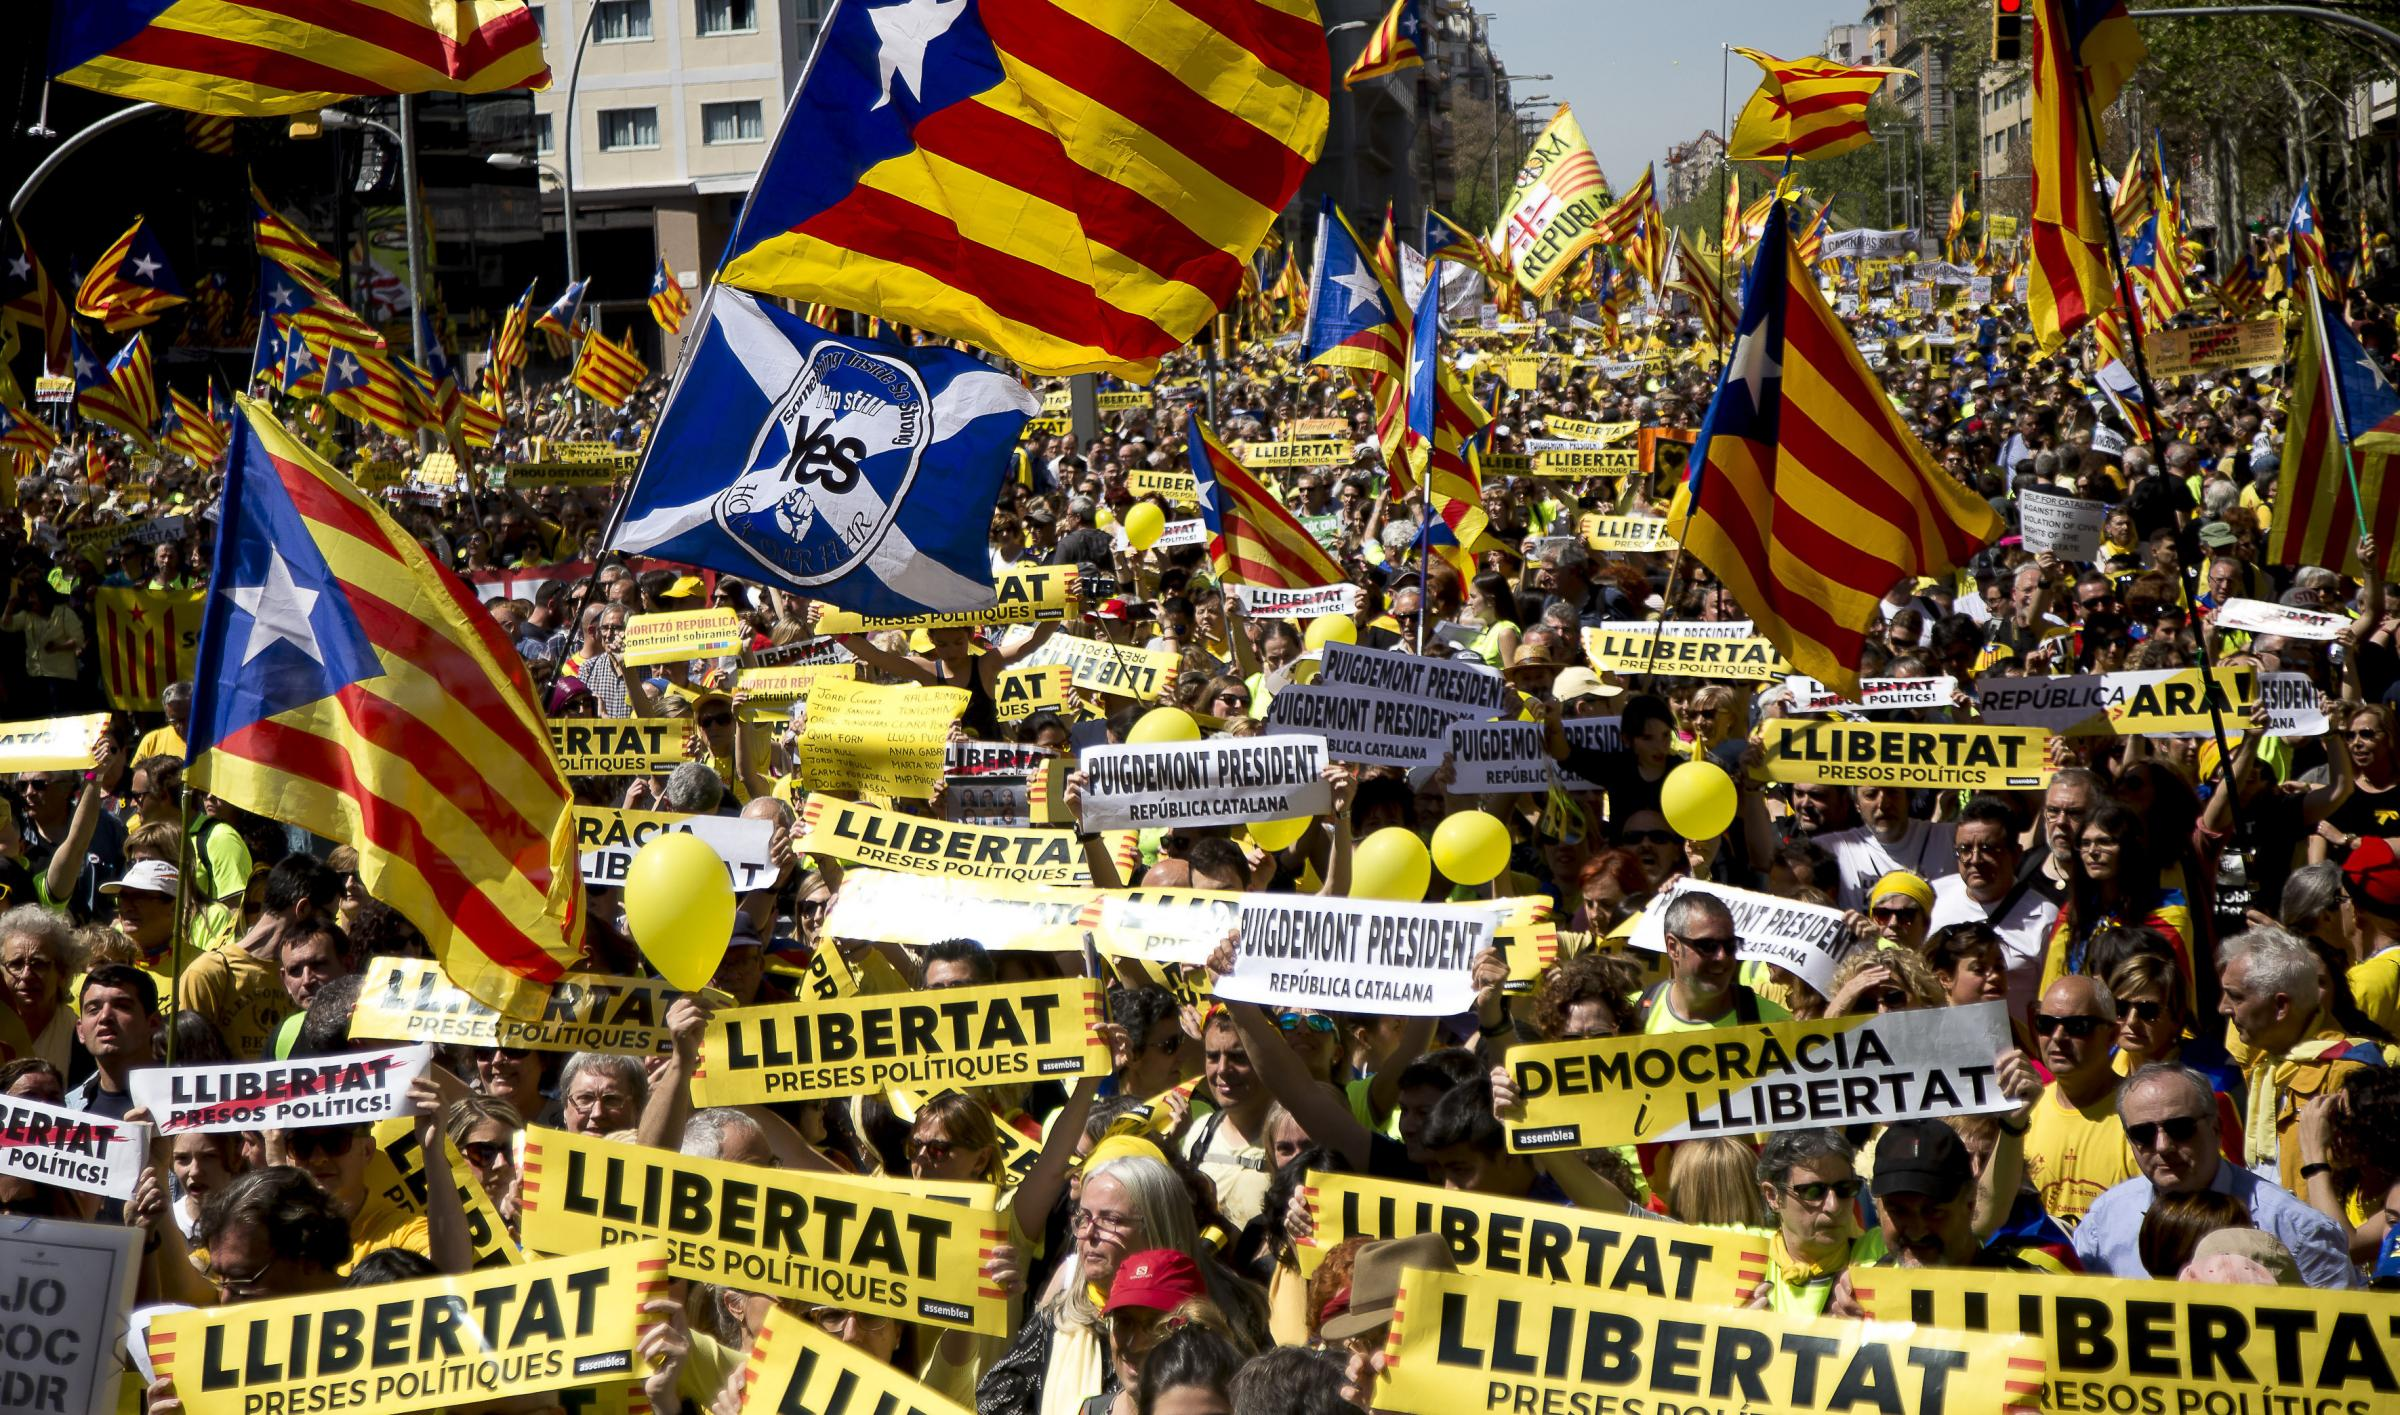 An estimated 750,000 demonstrators showed their support for imprisoned or exiled politicians